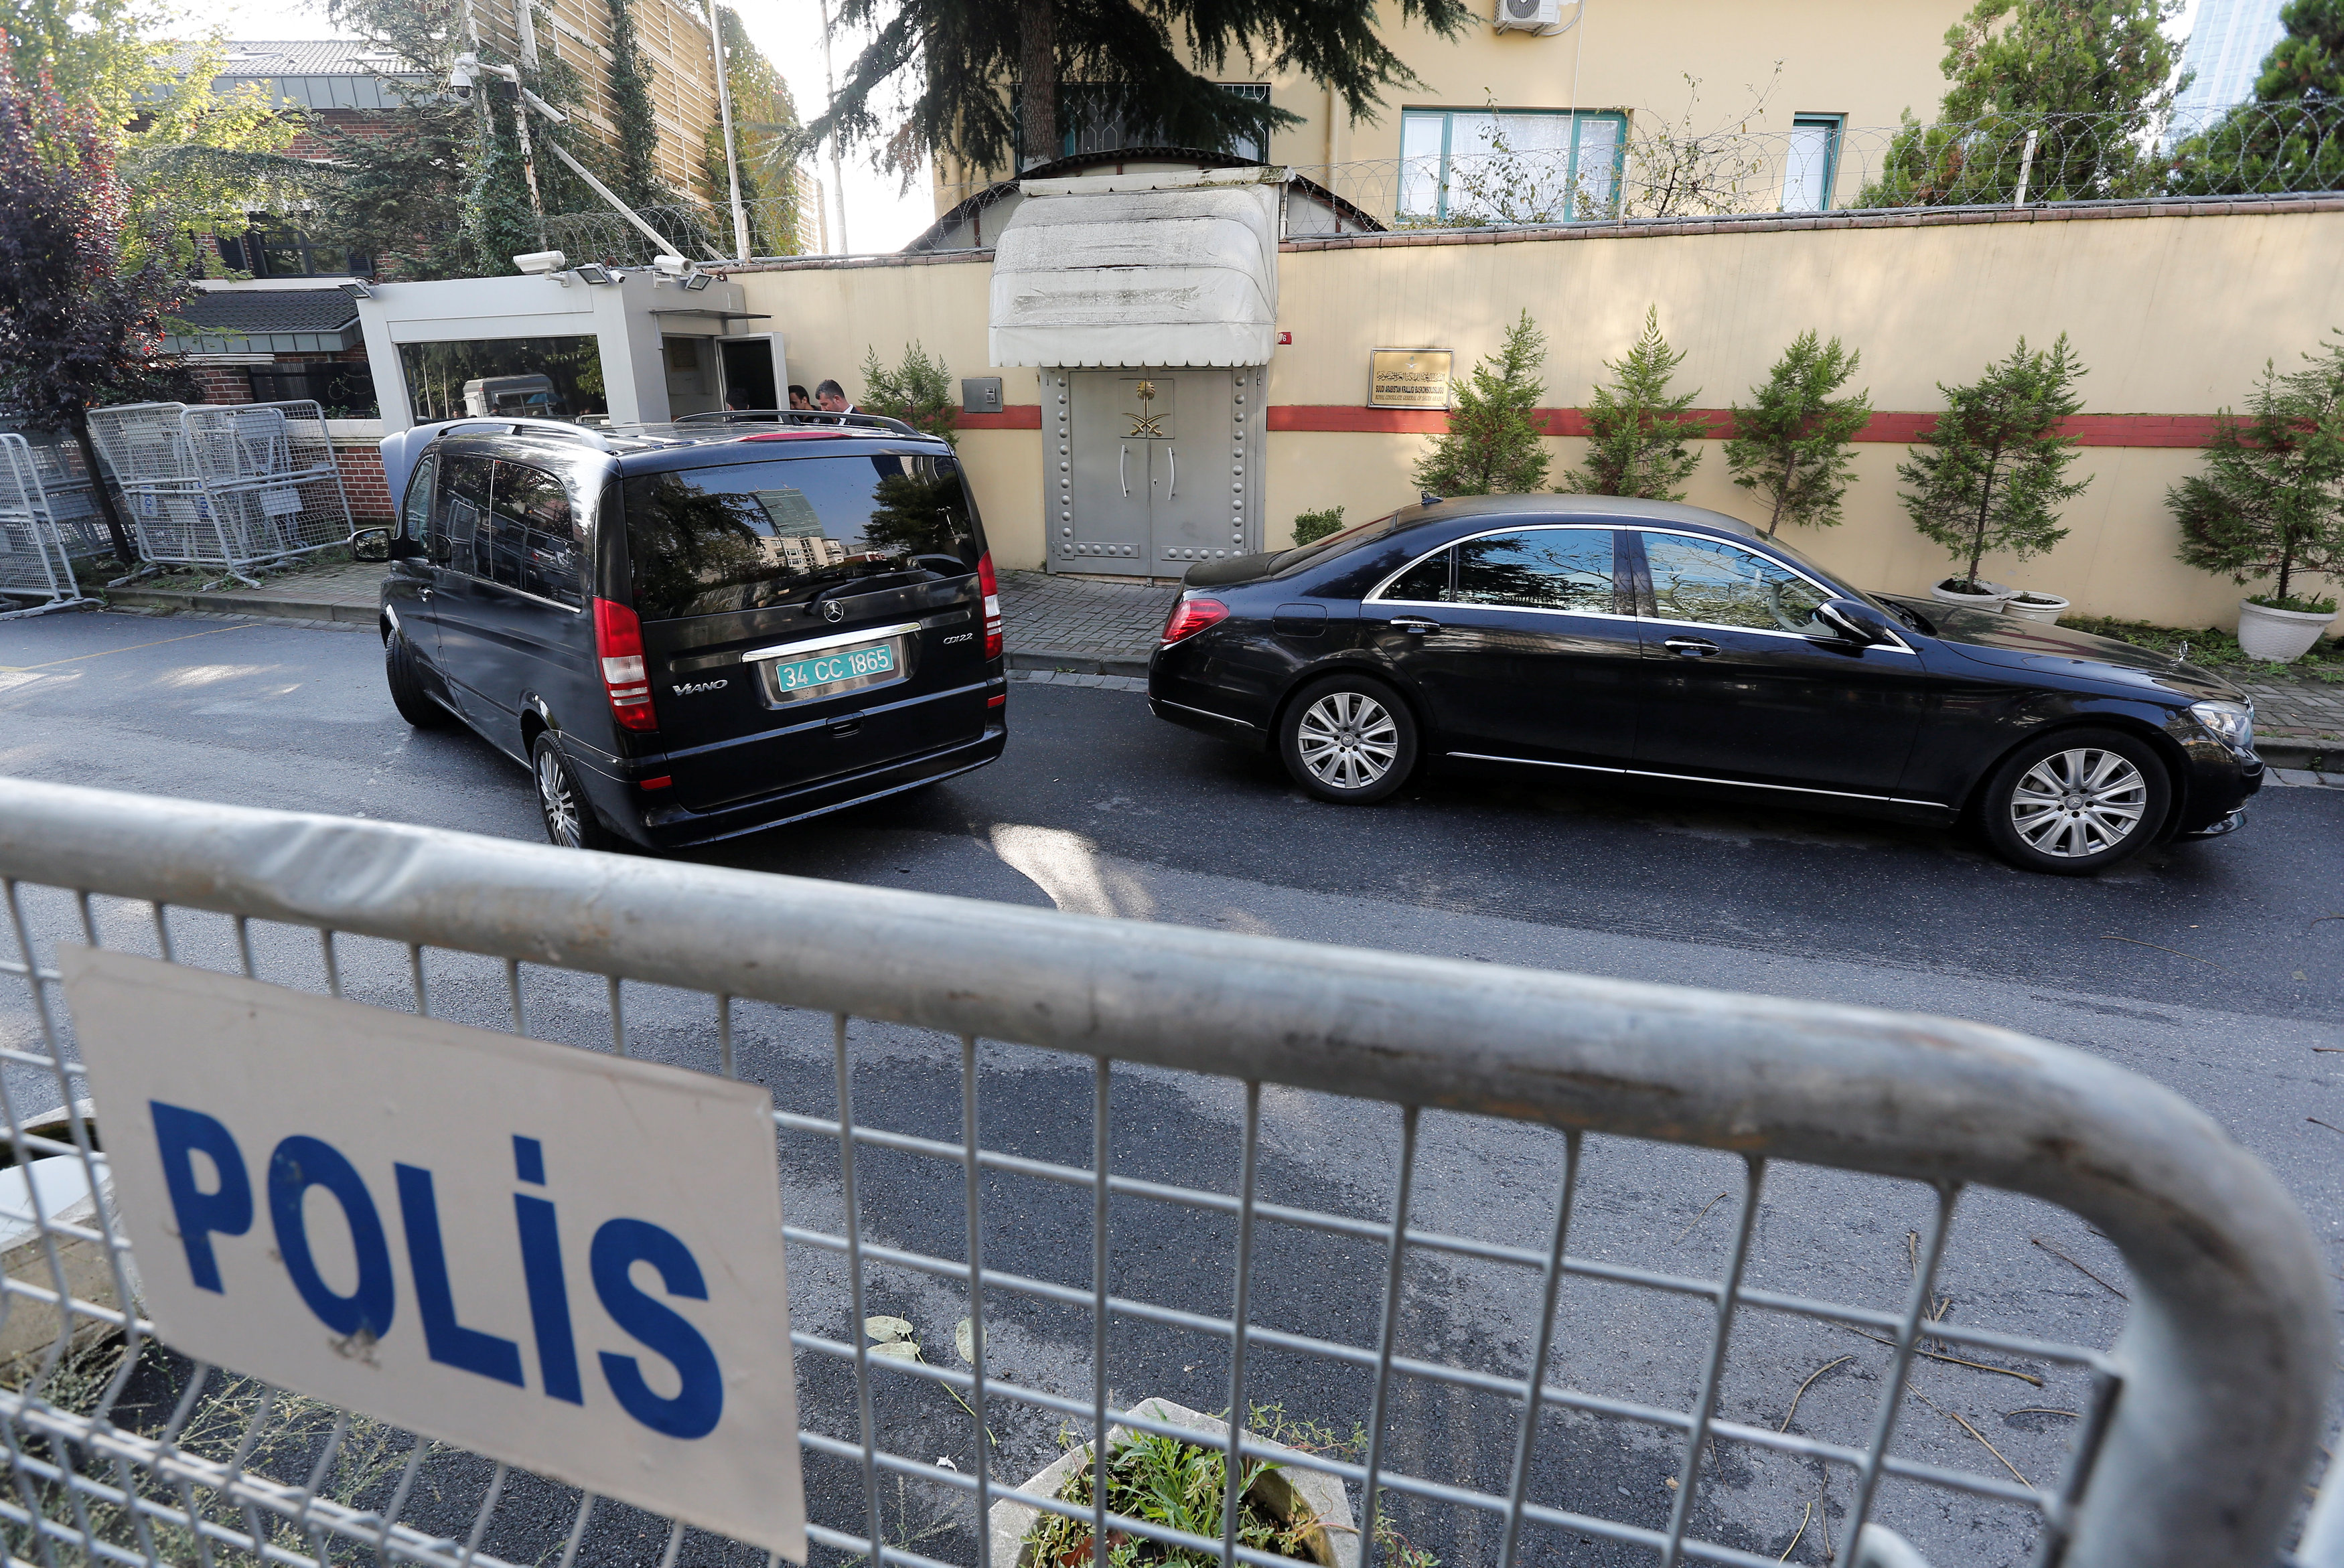 Vehicles with diplomatic plates are seen in front of Saudi Arabia's consulate in Istanbul, Turkey October 12, 2018. REUTERS/Murad Sezer